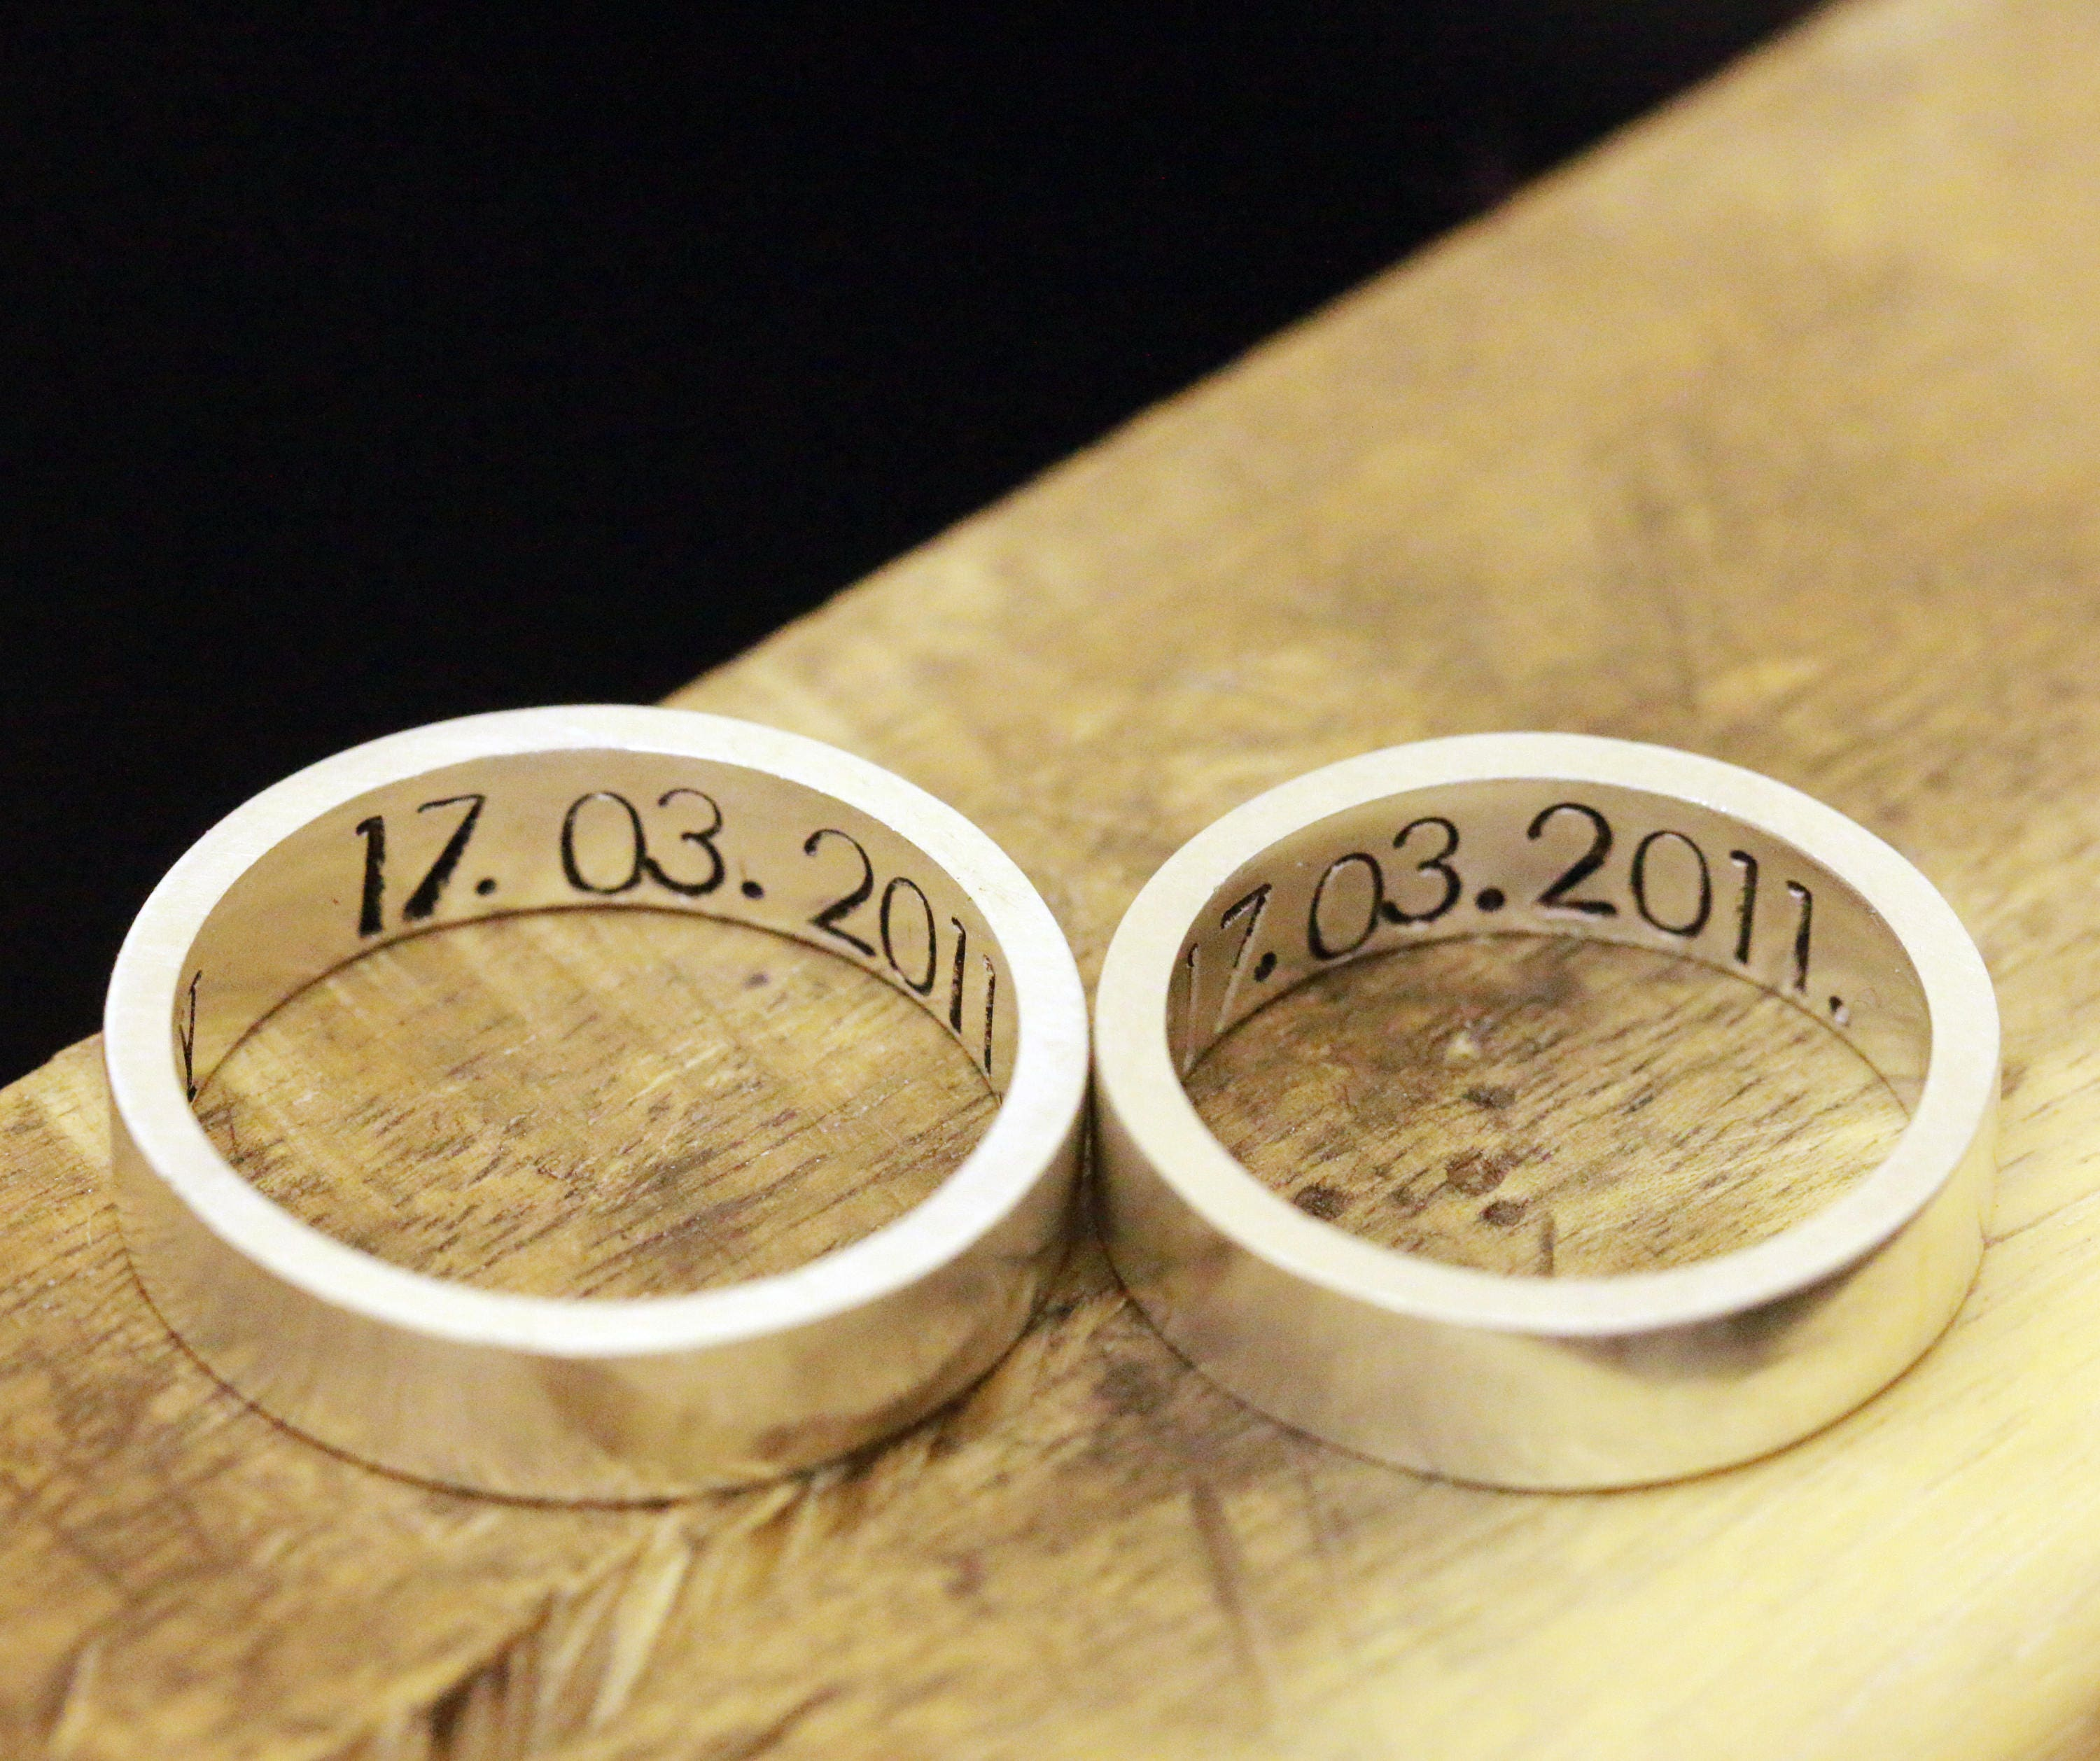 jewellery bespoke bands a messages from hidden with wedding blog message